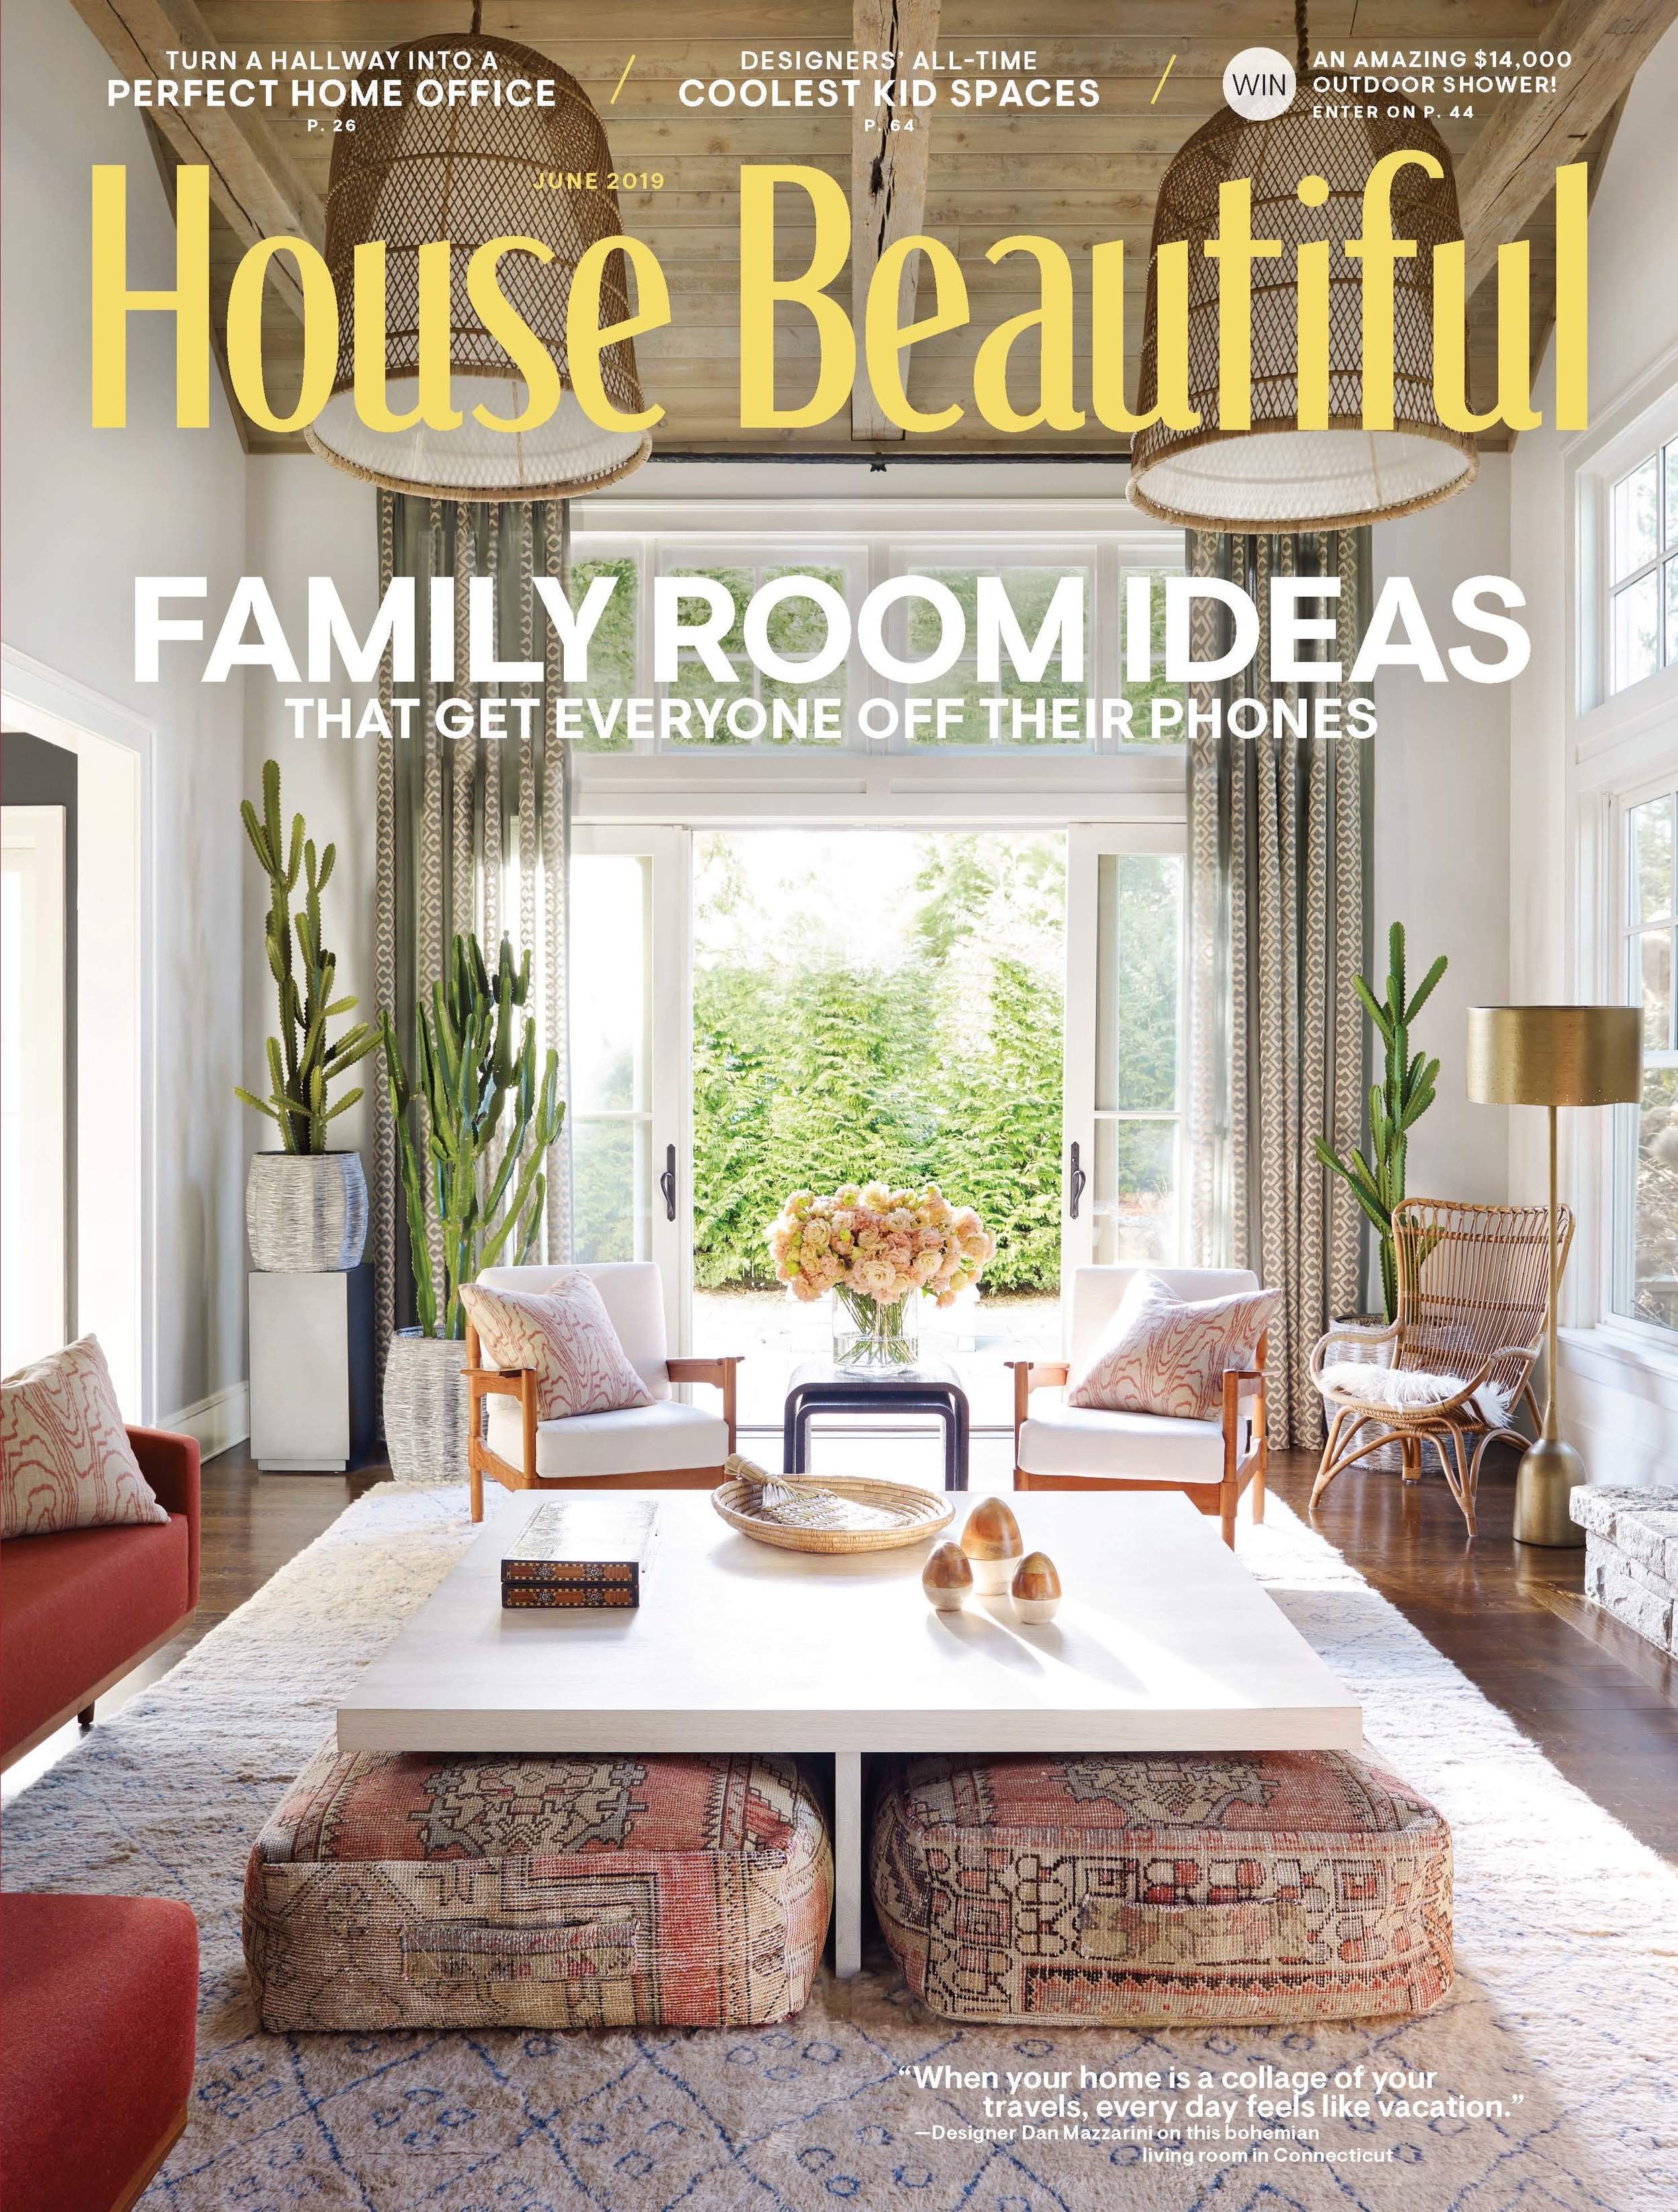 HouseBeautiful_0619_Cover.jpg